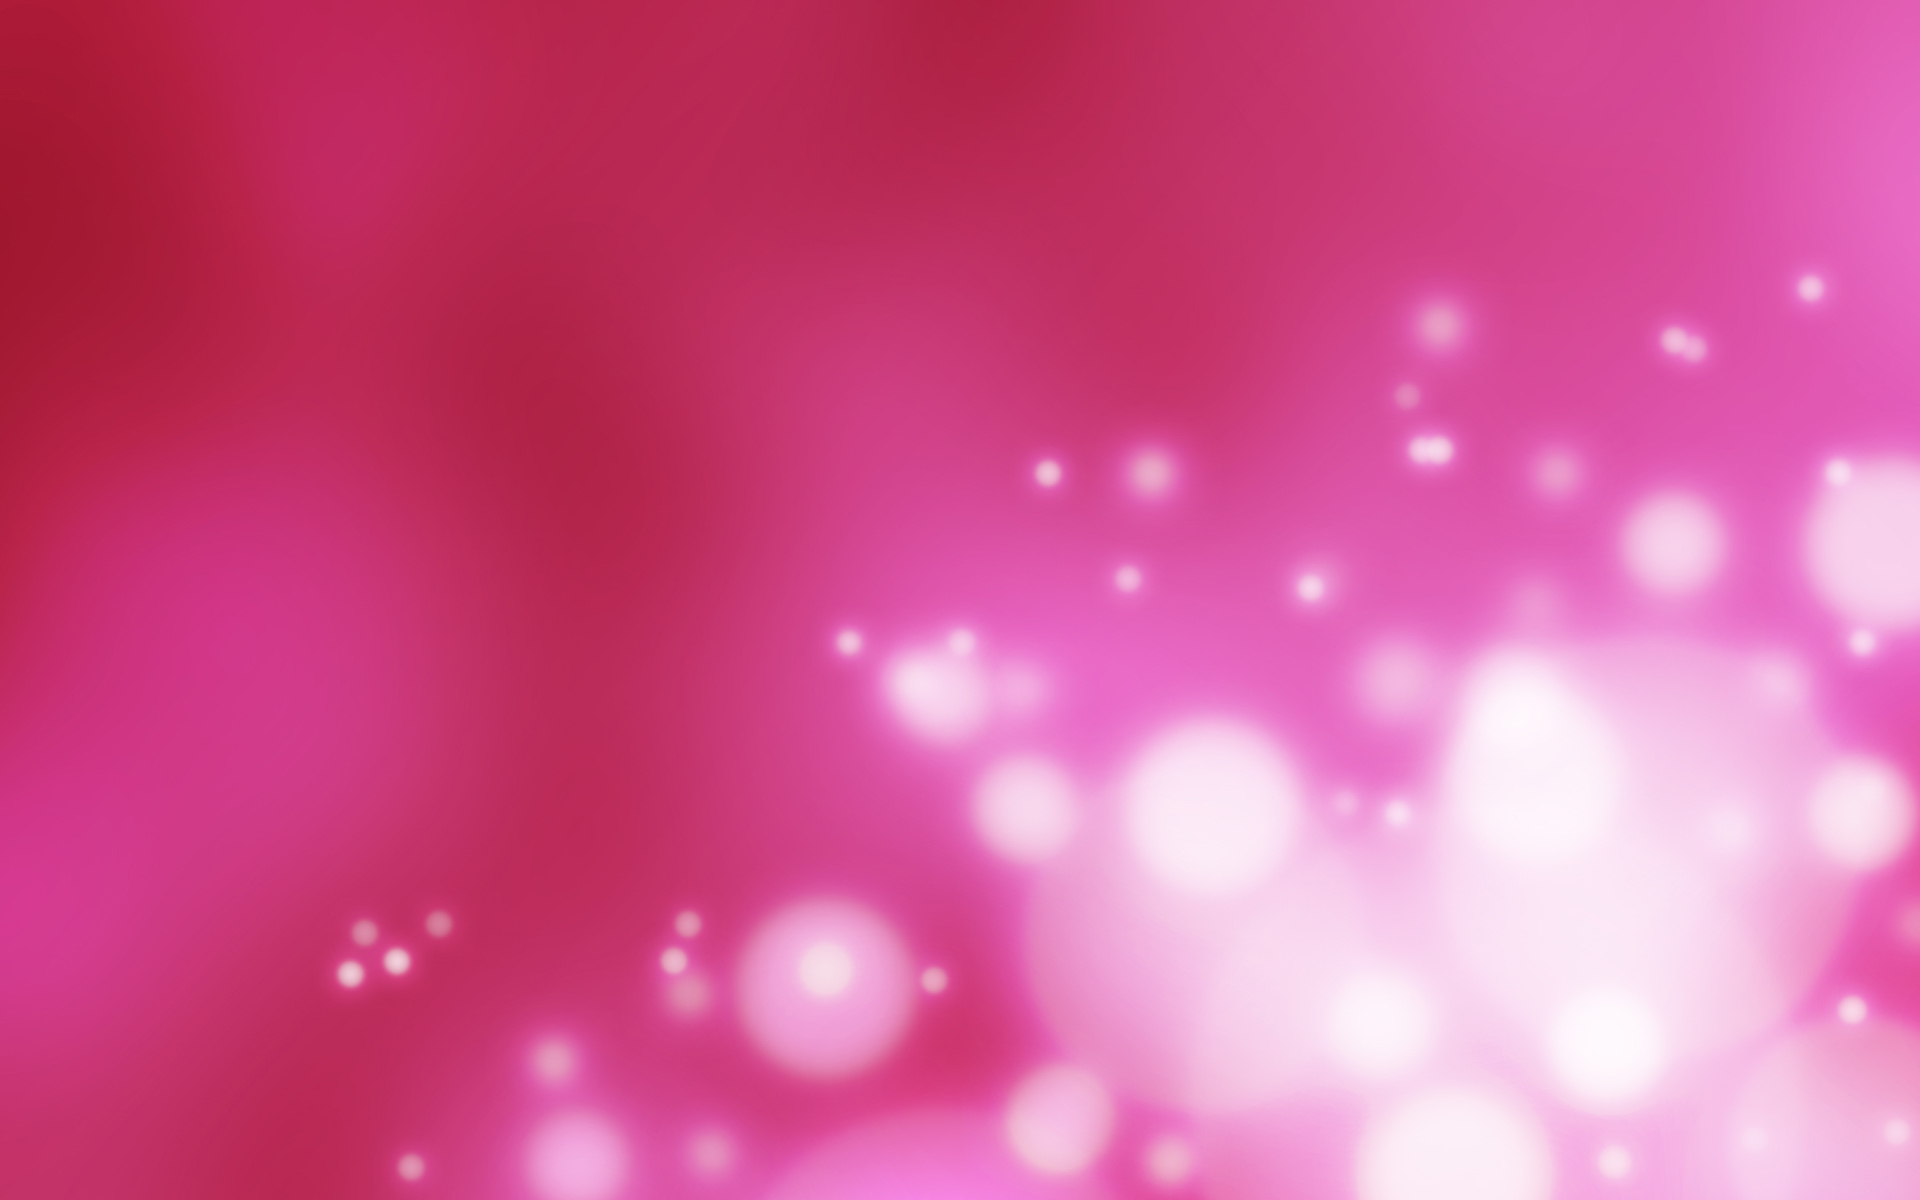 Hot Pink Backgrounds For Desktop 14 Background Wallpaper